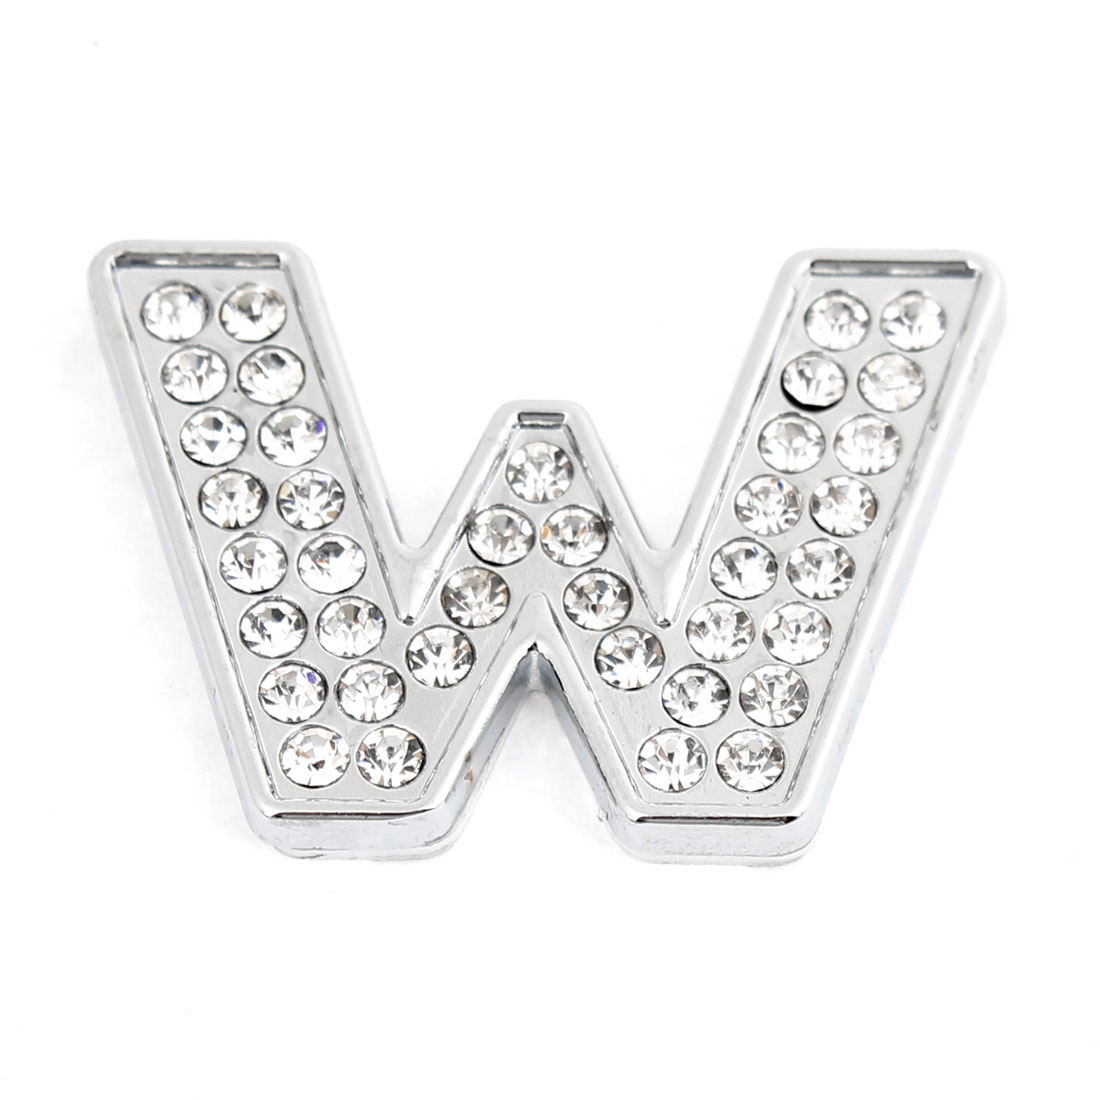 Car Vehicle Rhinestone Accent Letter W Pattern Stickers Silver Tone